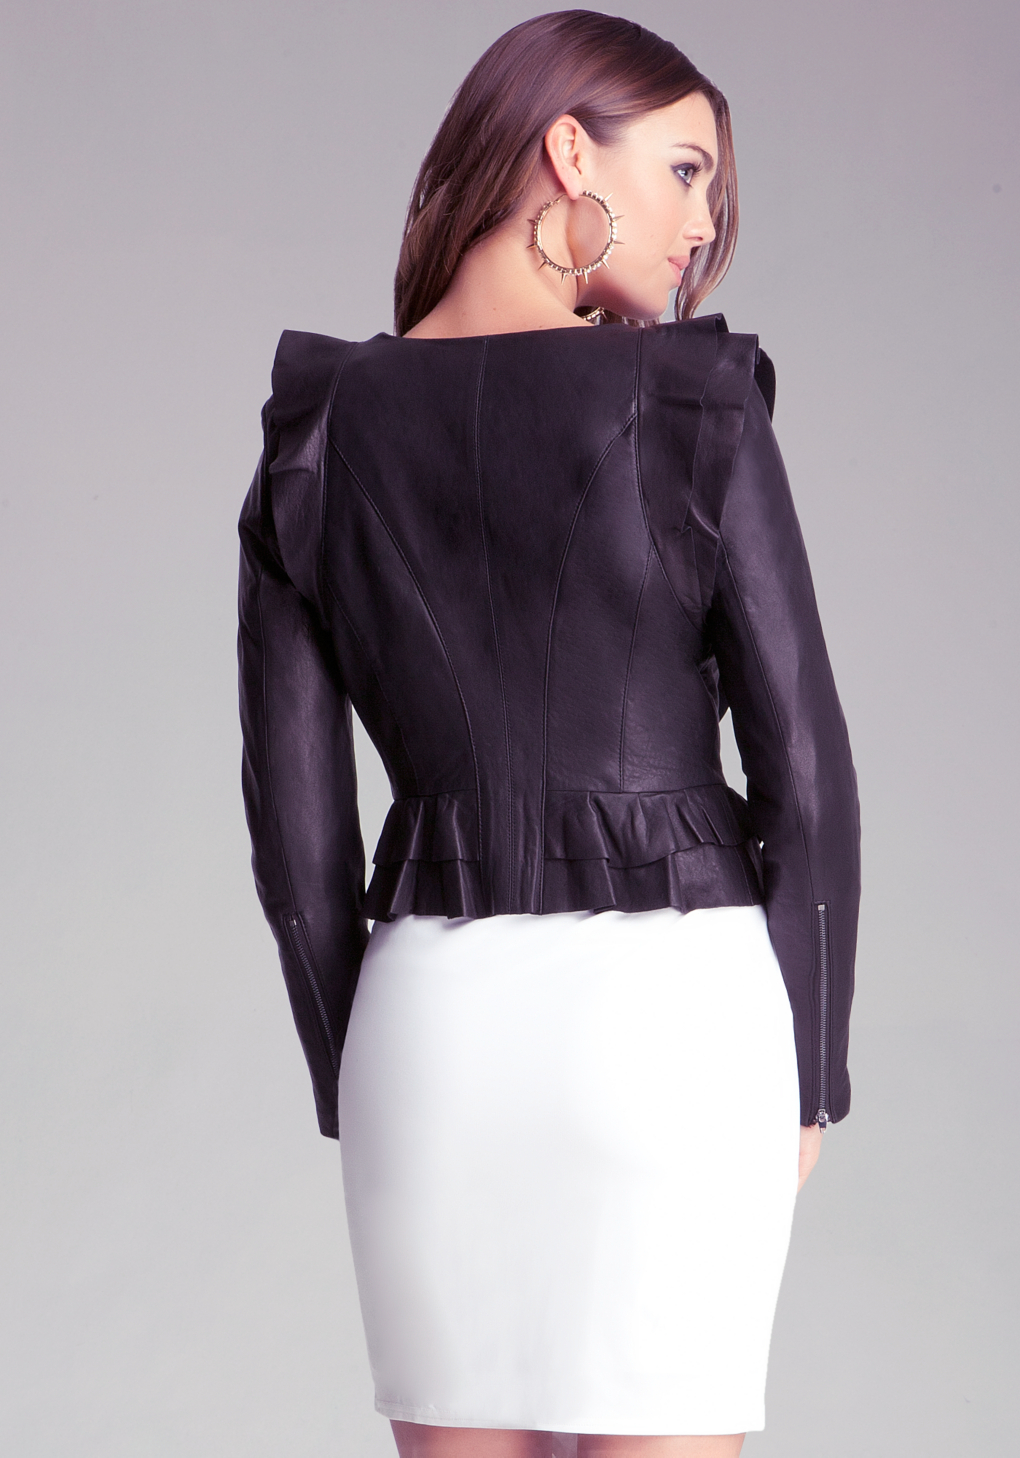 Bebe Ruffle Leather Jacket In Black Lyst